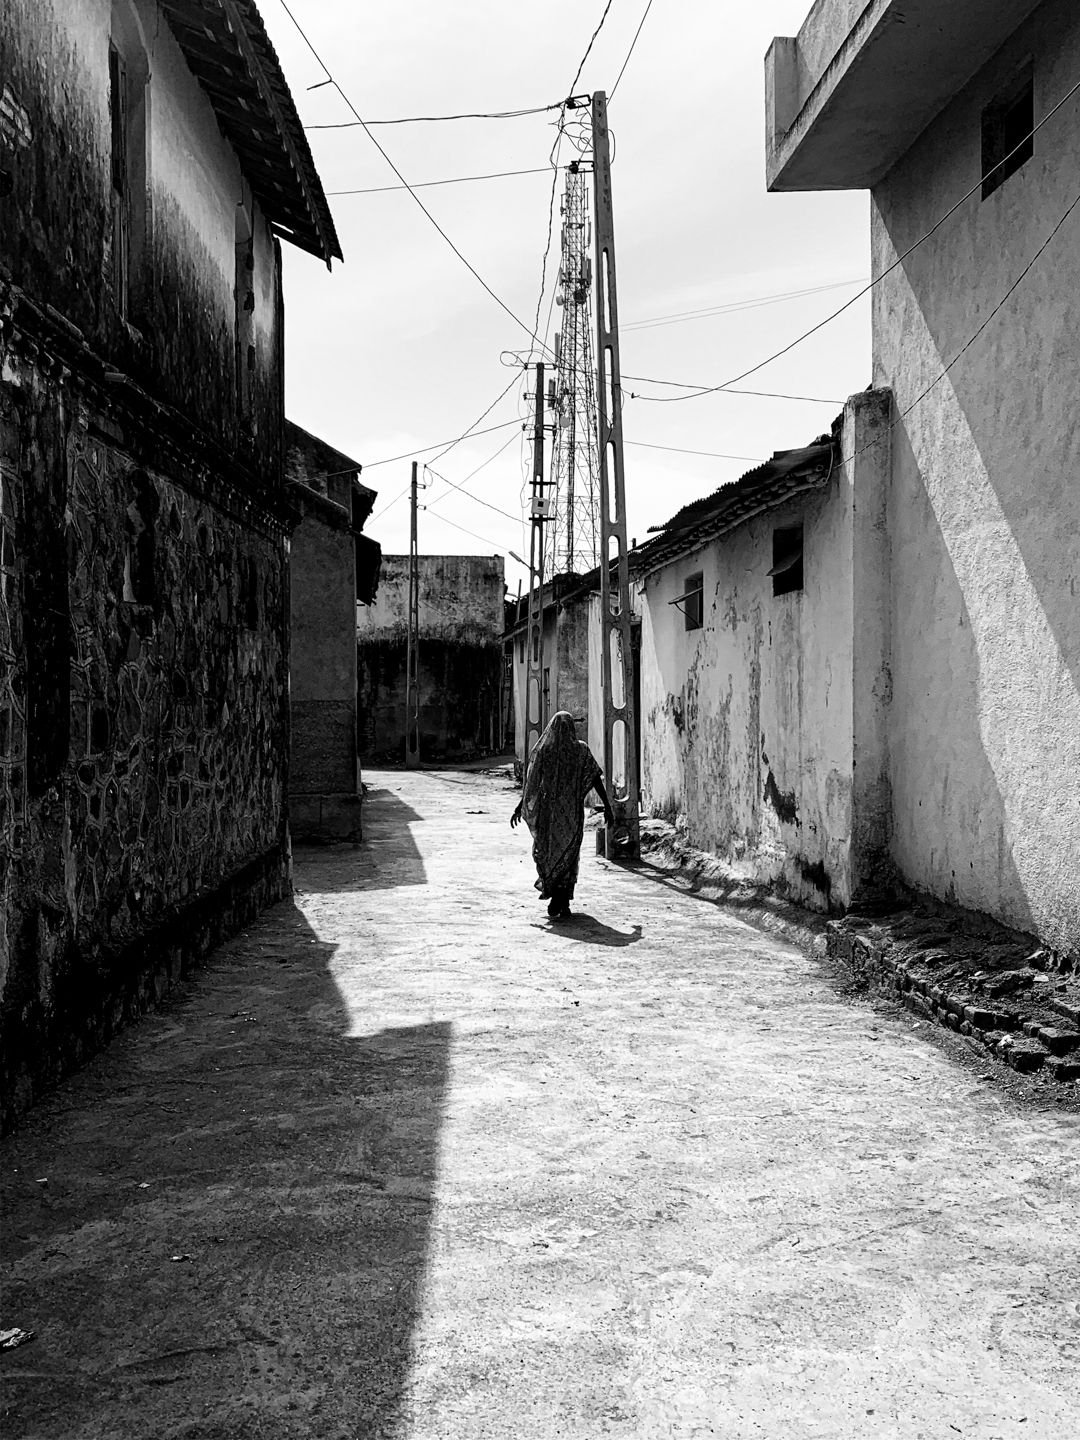 Streets, village, India. © Mohit Patel